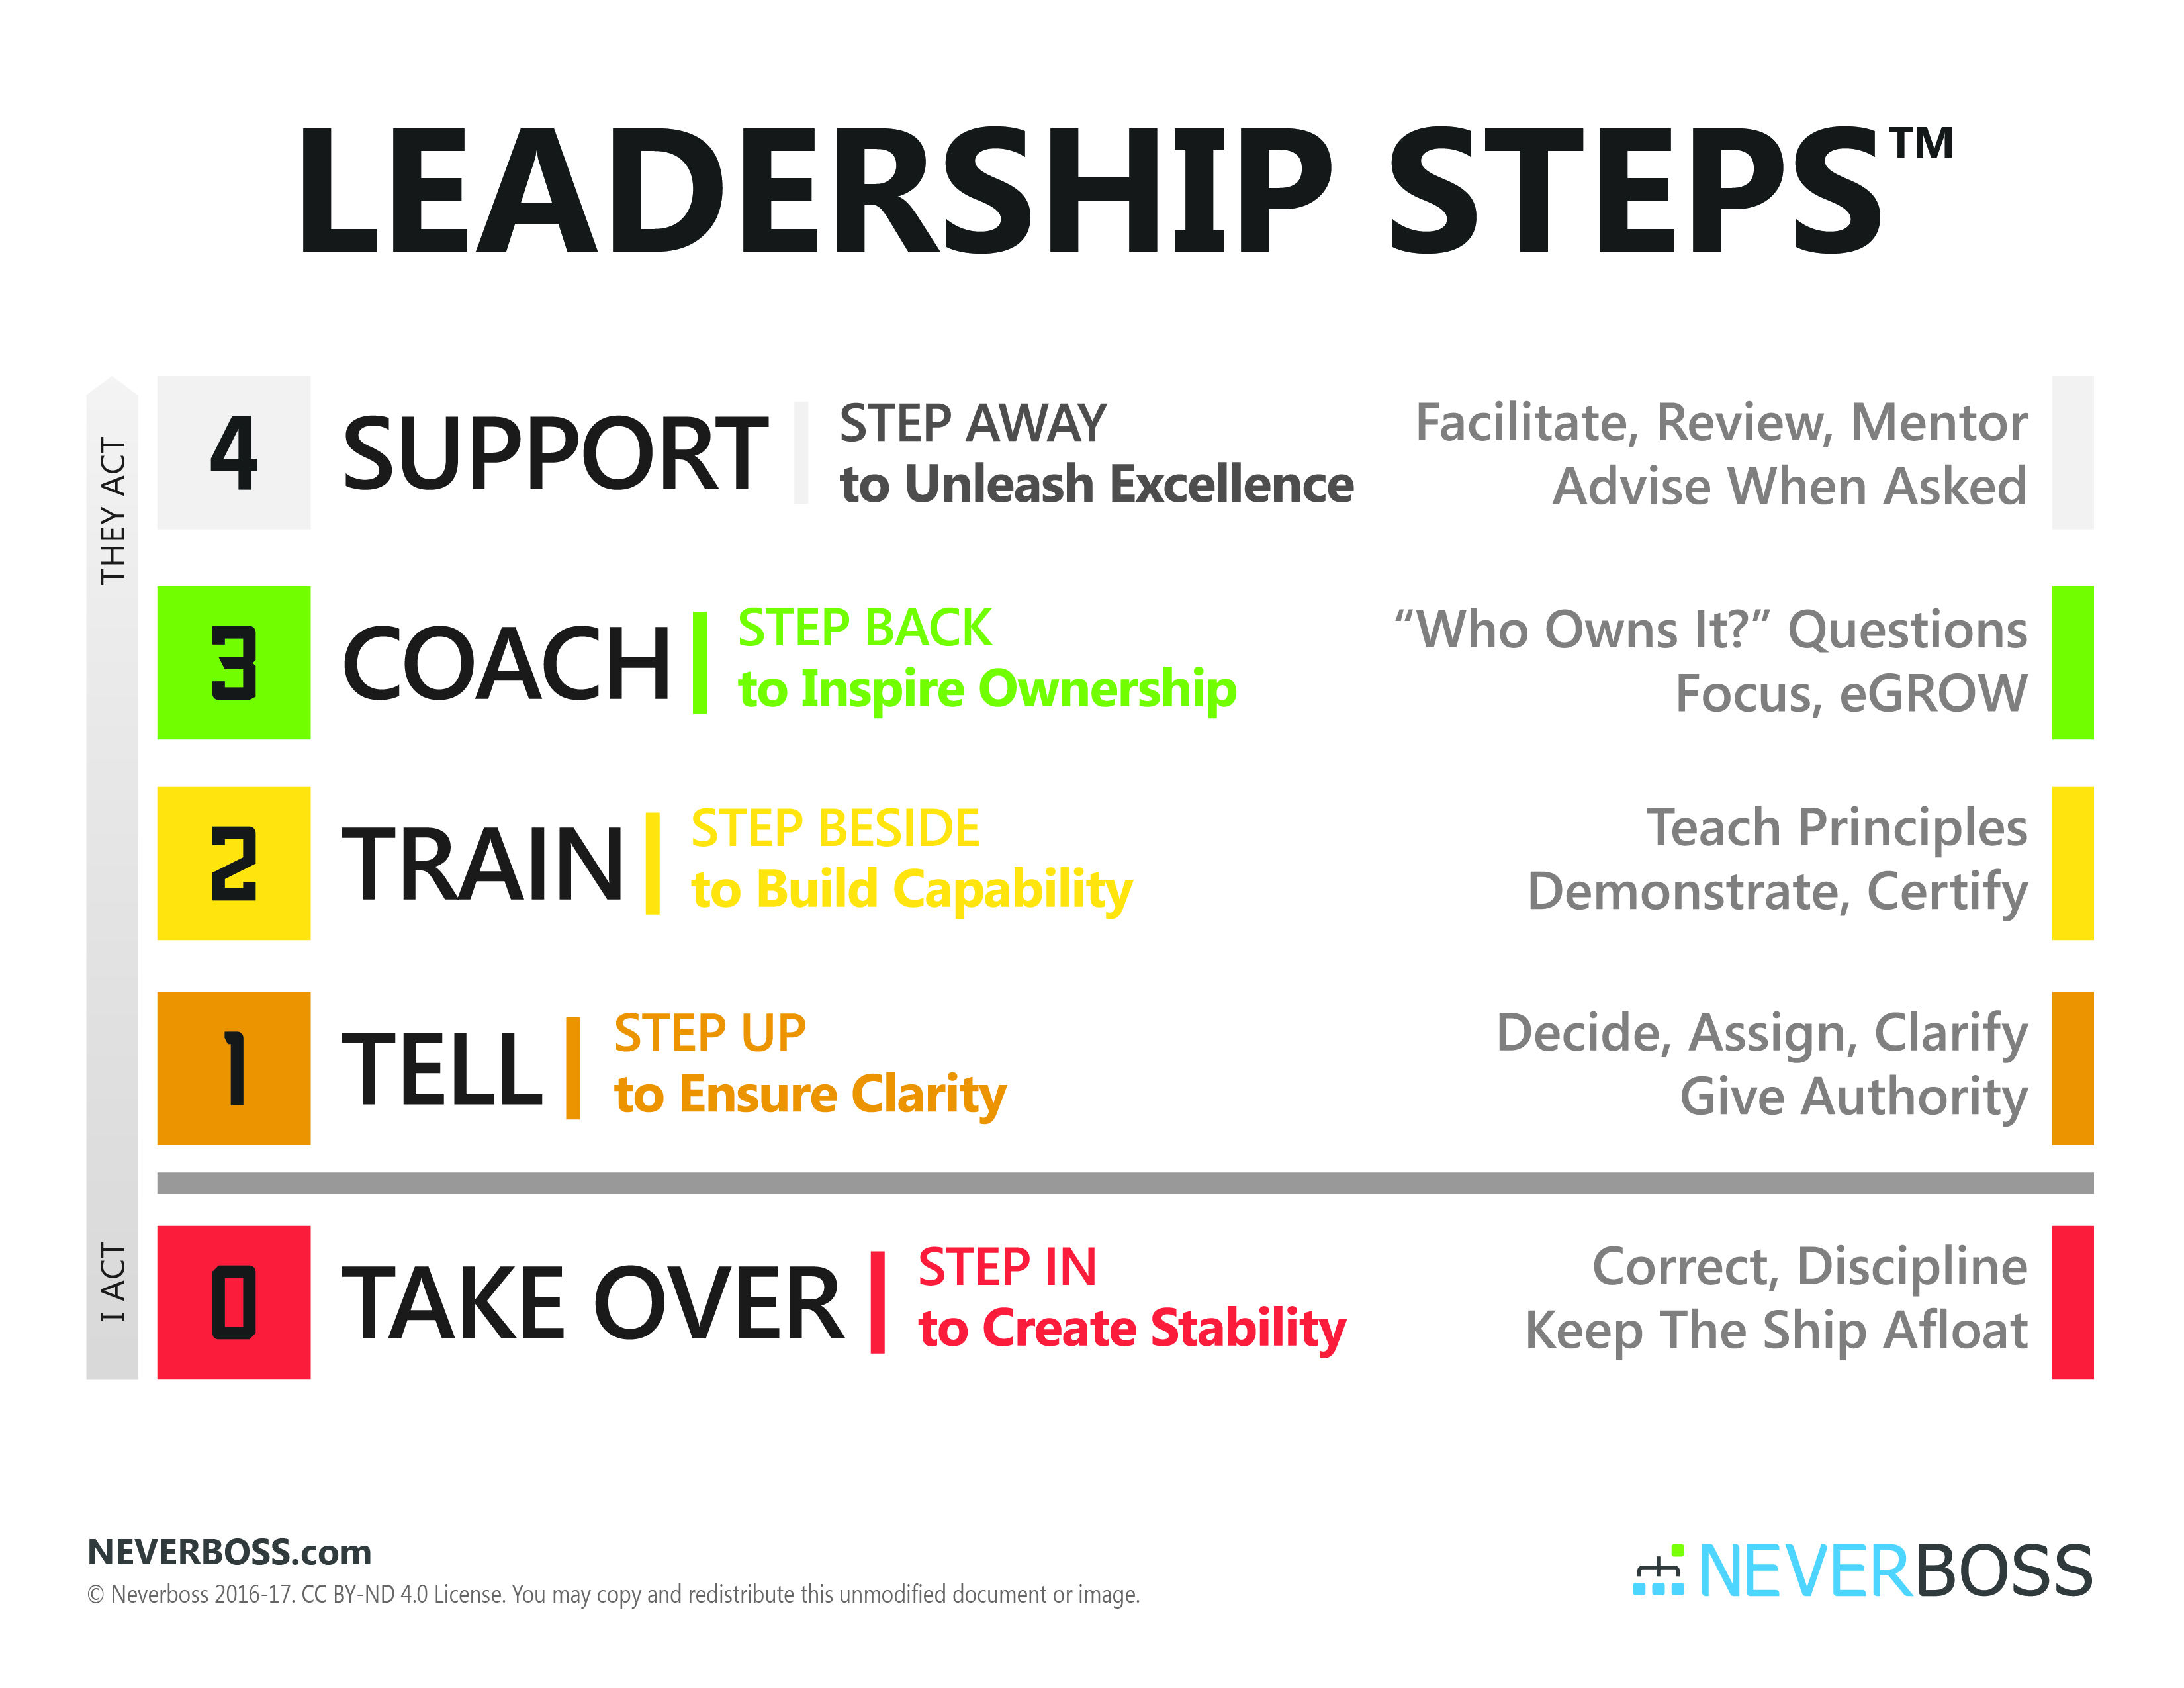 Leadership Steps™ Poster - Neverboss